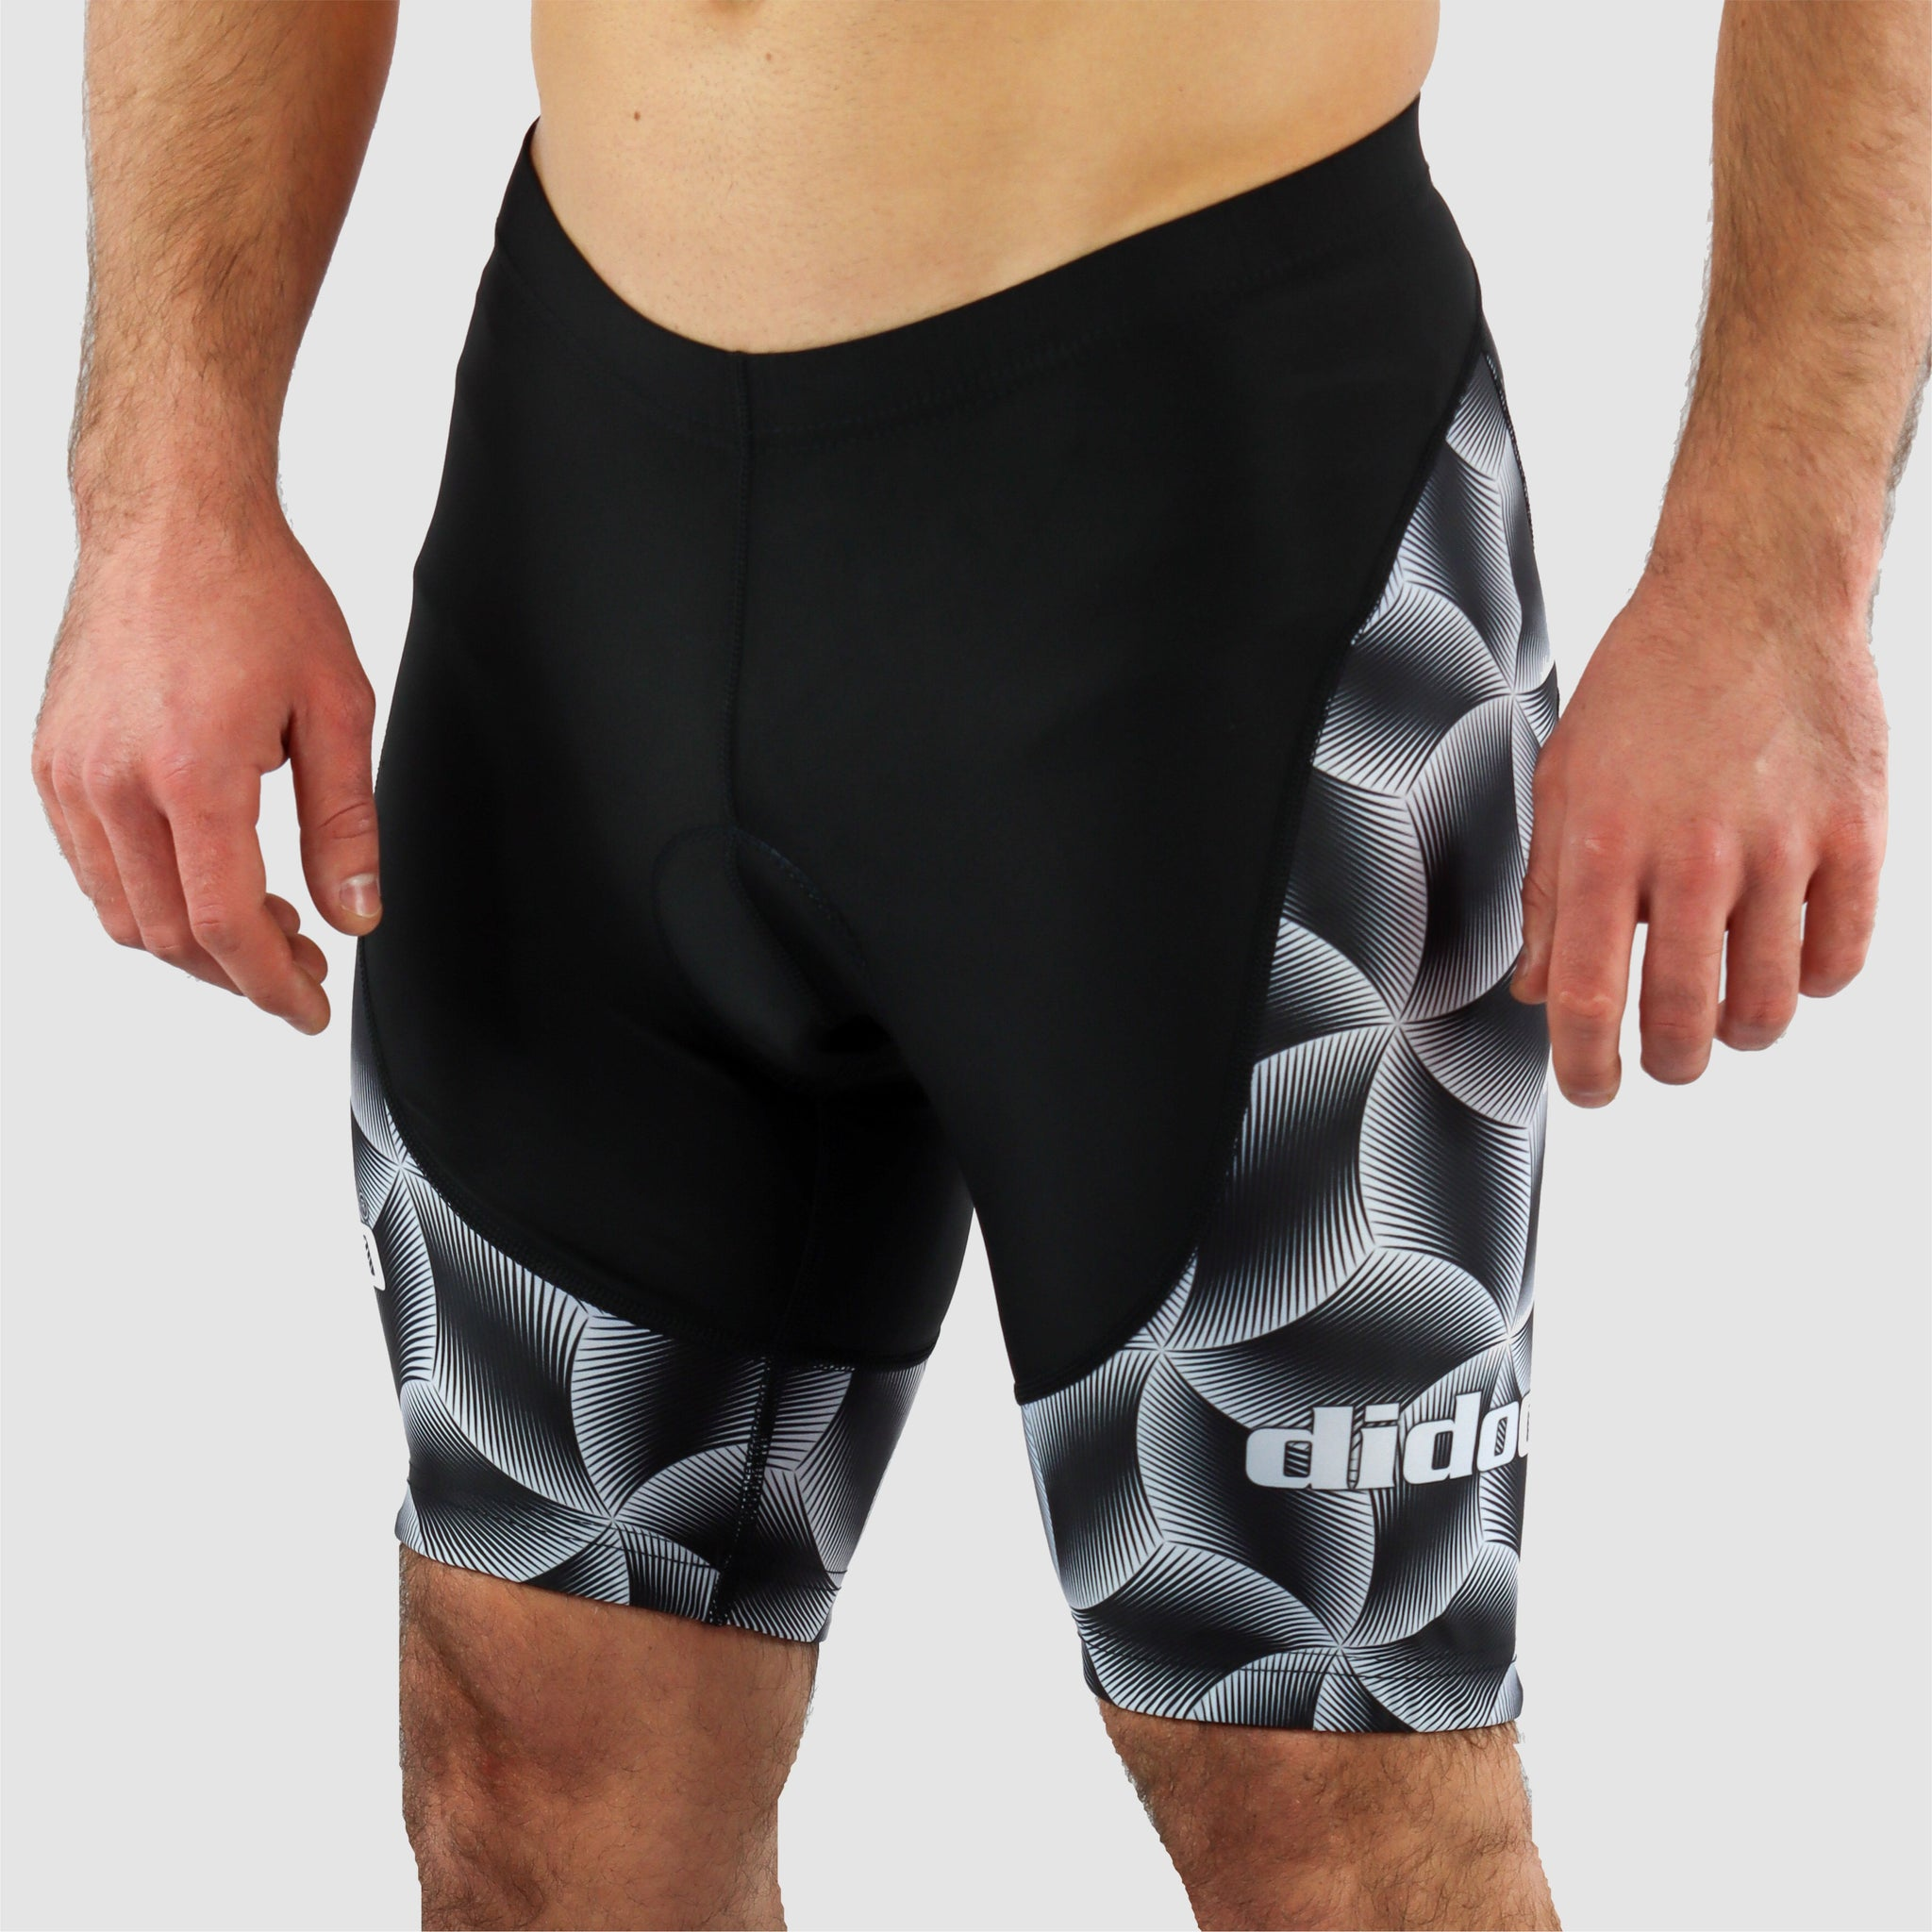 DiDOO Men's Classic Quick Dry Padded Cycling Shorts Black and White